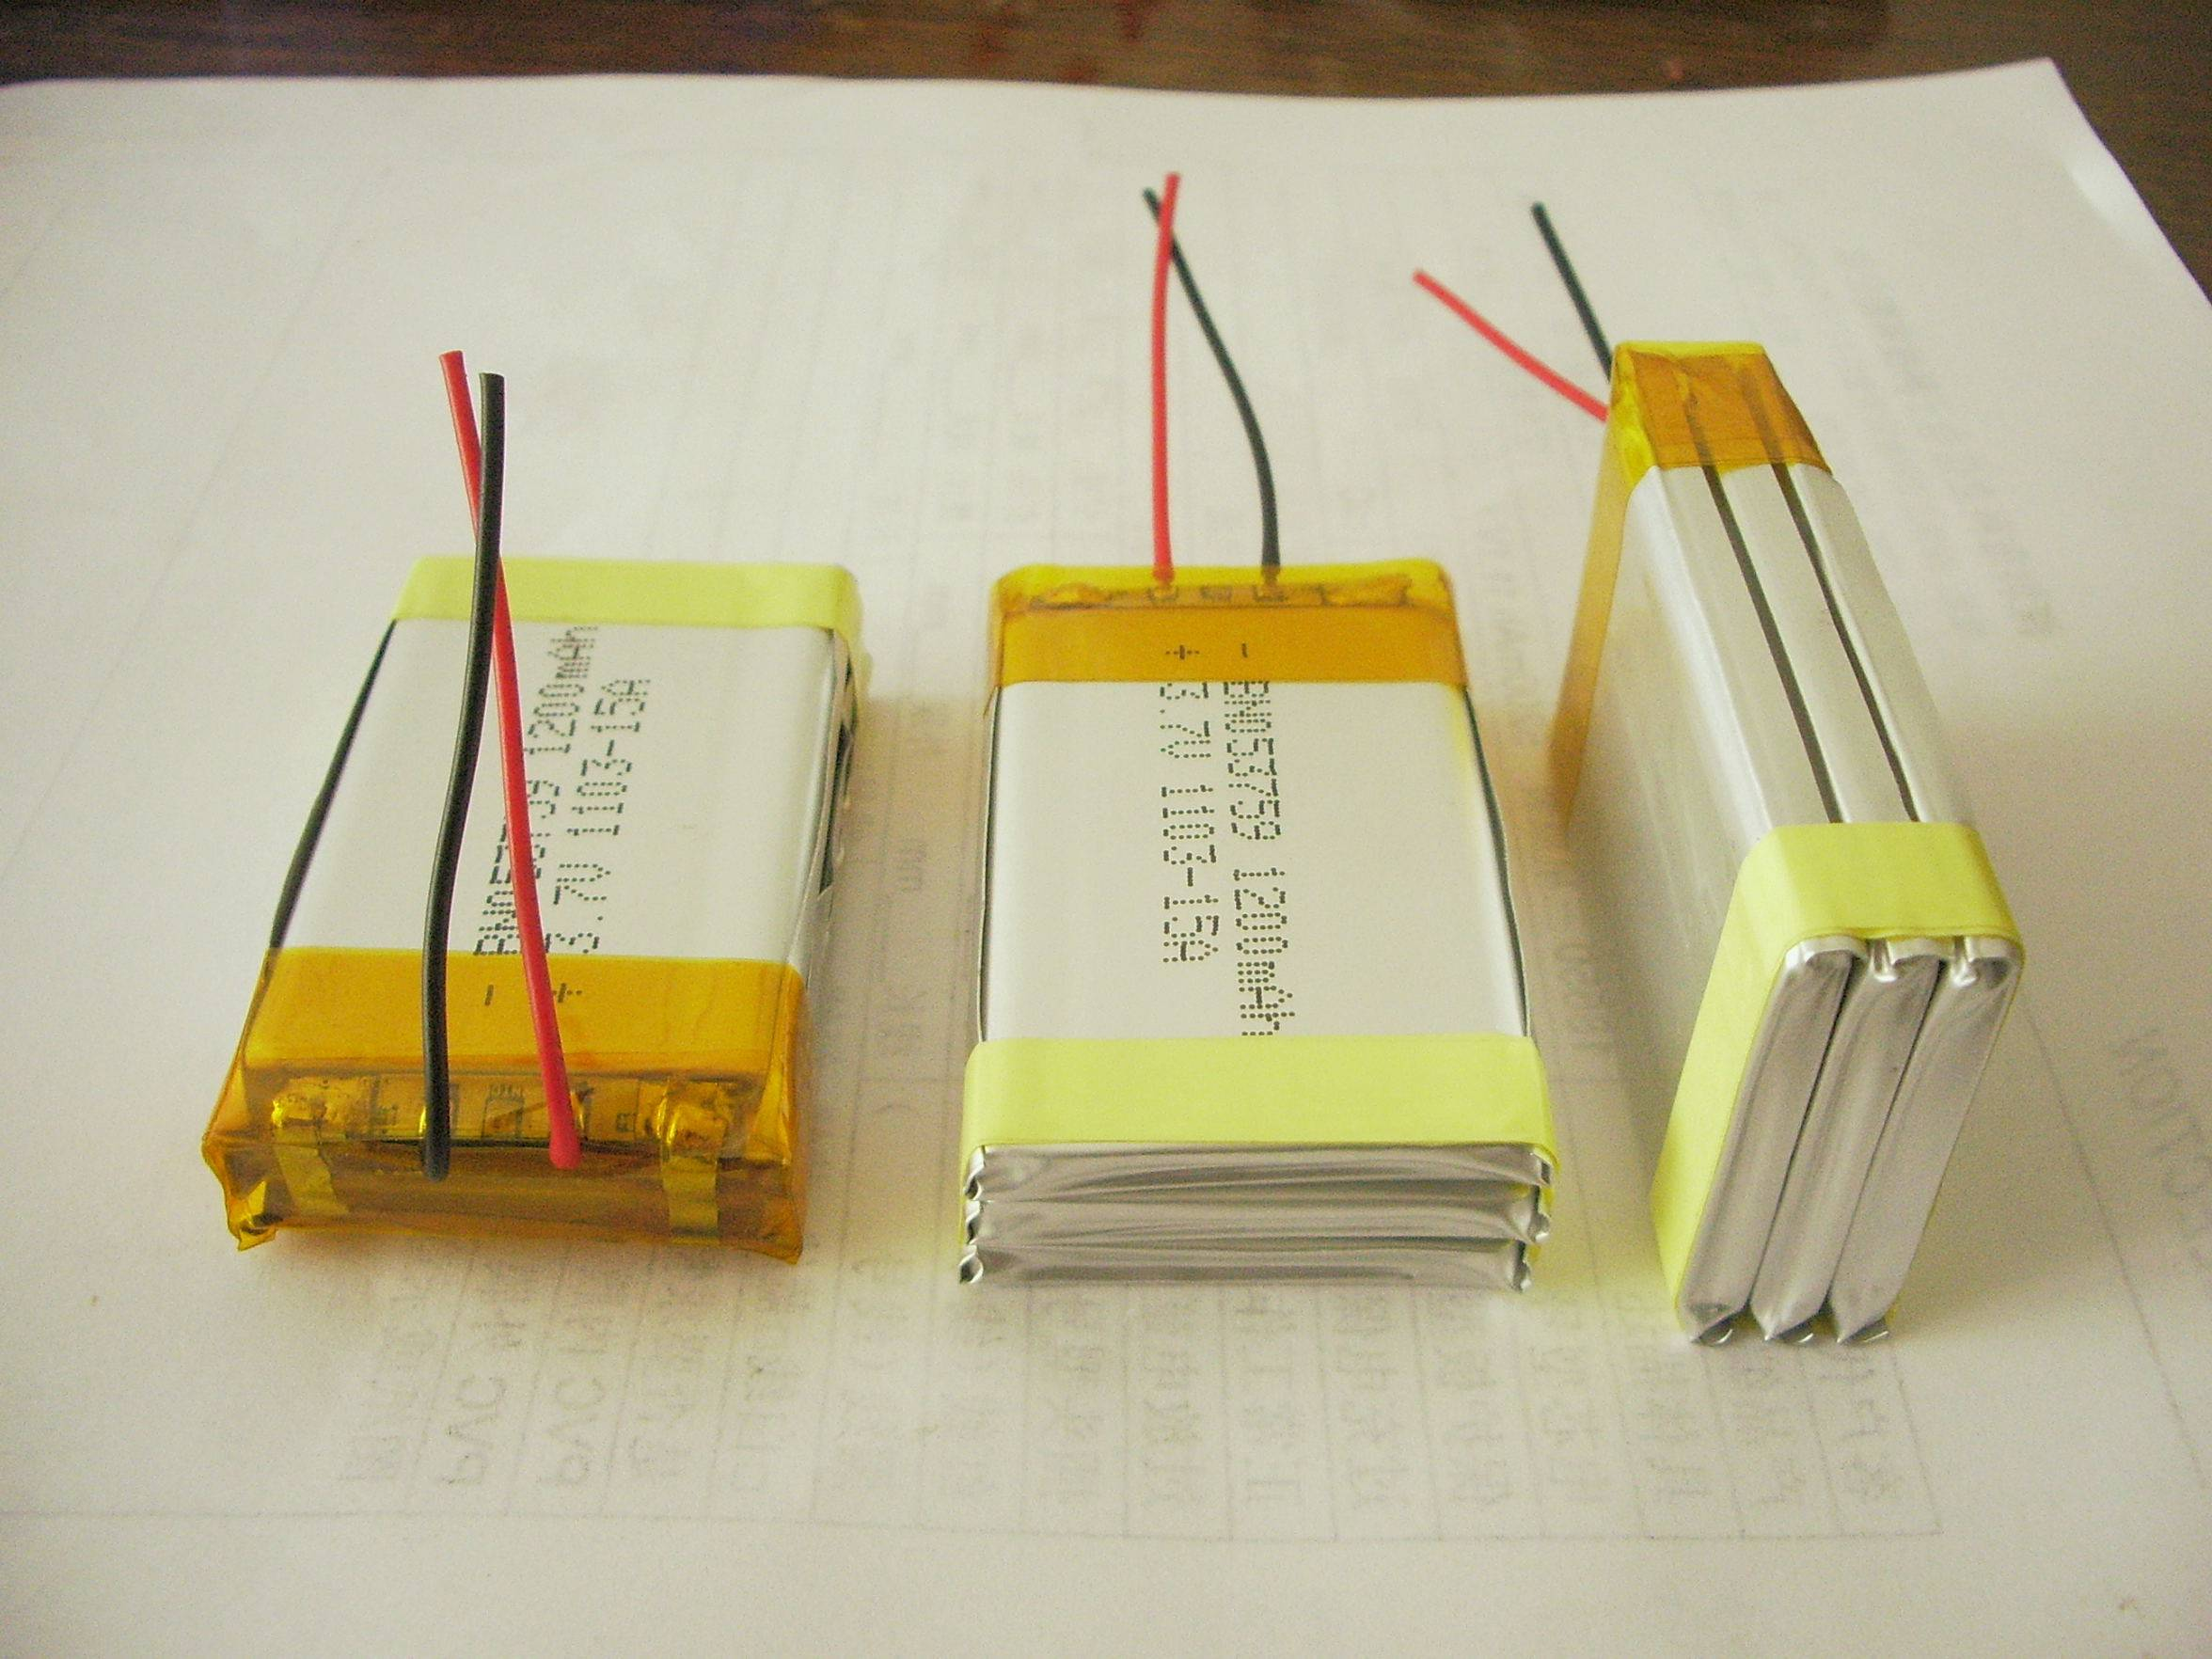 Rechargeable Li-Polymer 503759 3.7V 3600mAh battery pack with PCB and Leading Wires